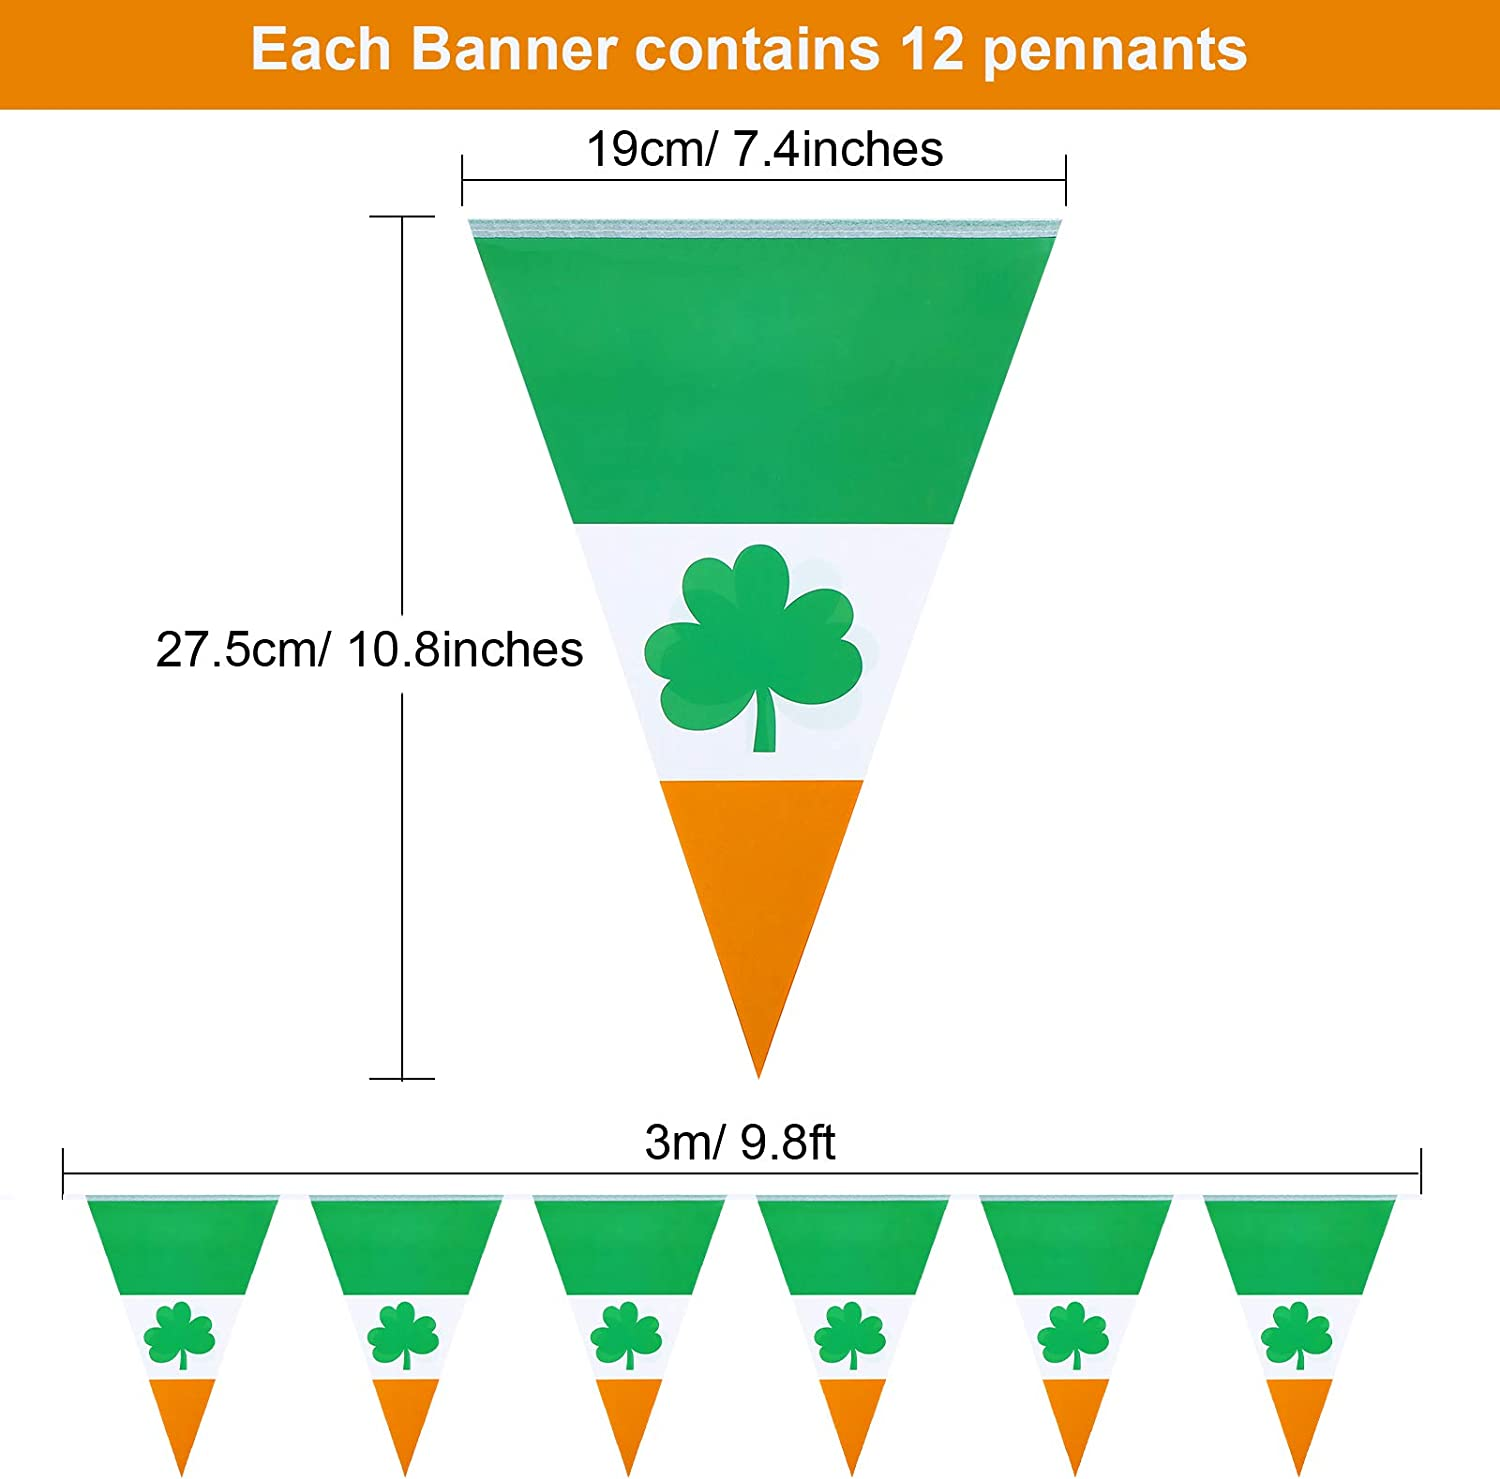 5 Pieces St Patricks Day Shamrock Pennant Banners Irish National Day Triangle Flags Luck Green Clover Flag Banners Party Accessories for St Patricks Day Theme Decor Outdoor Indoor 7.4 x 10.8 Inch